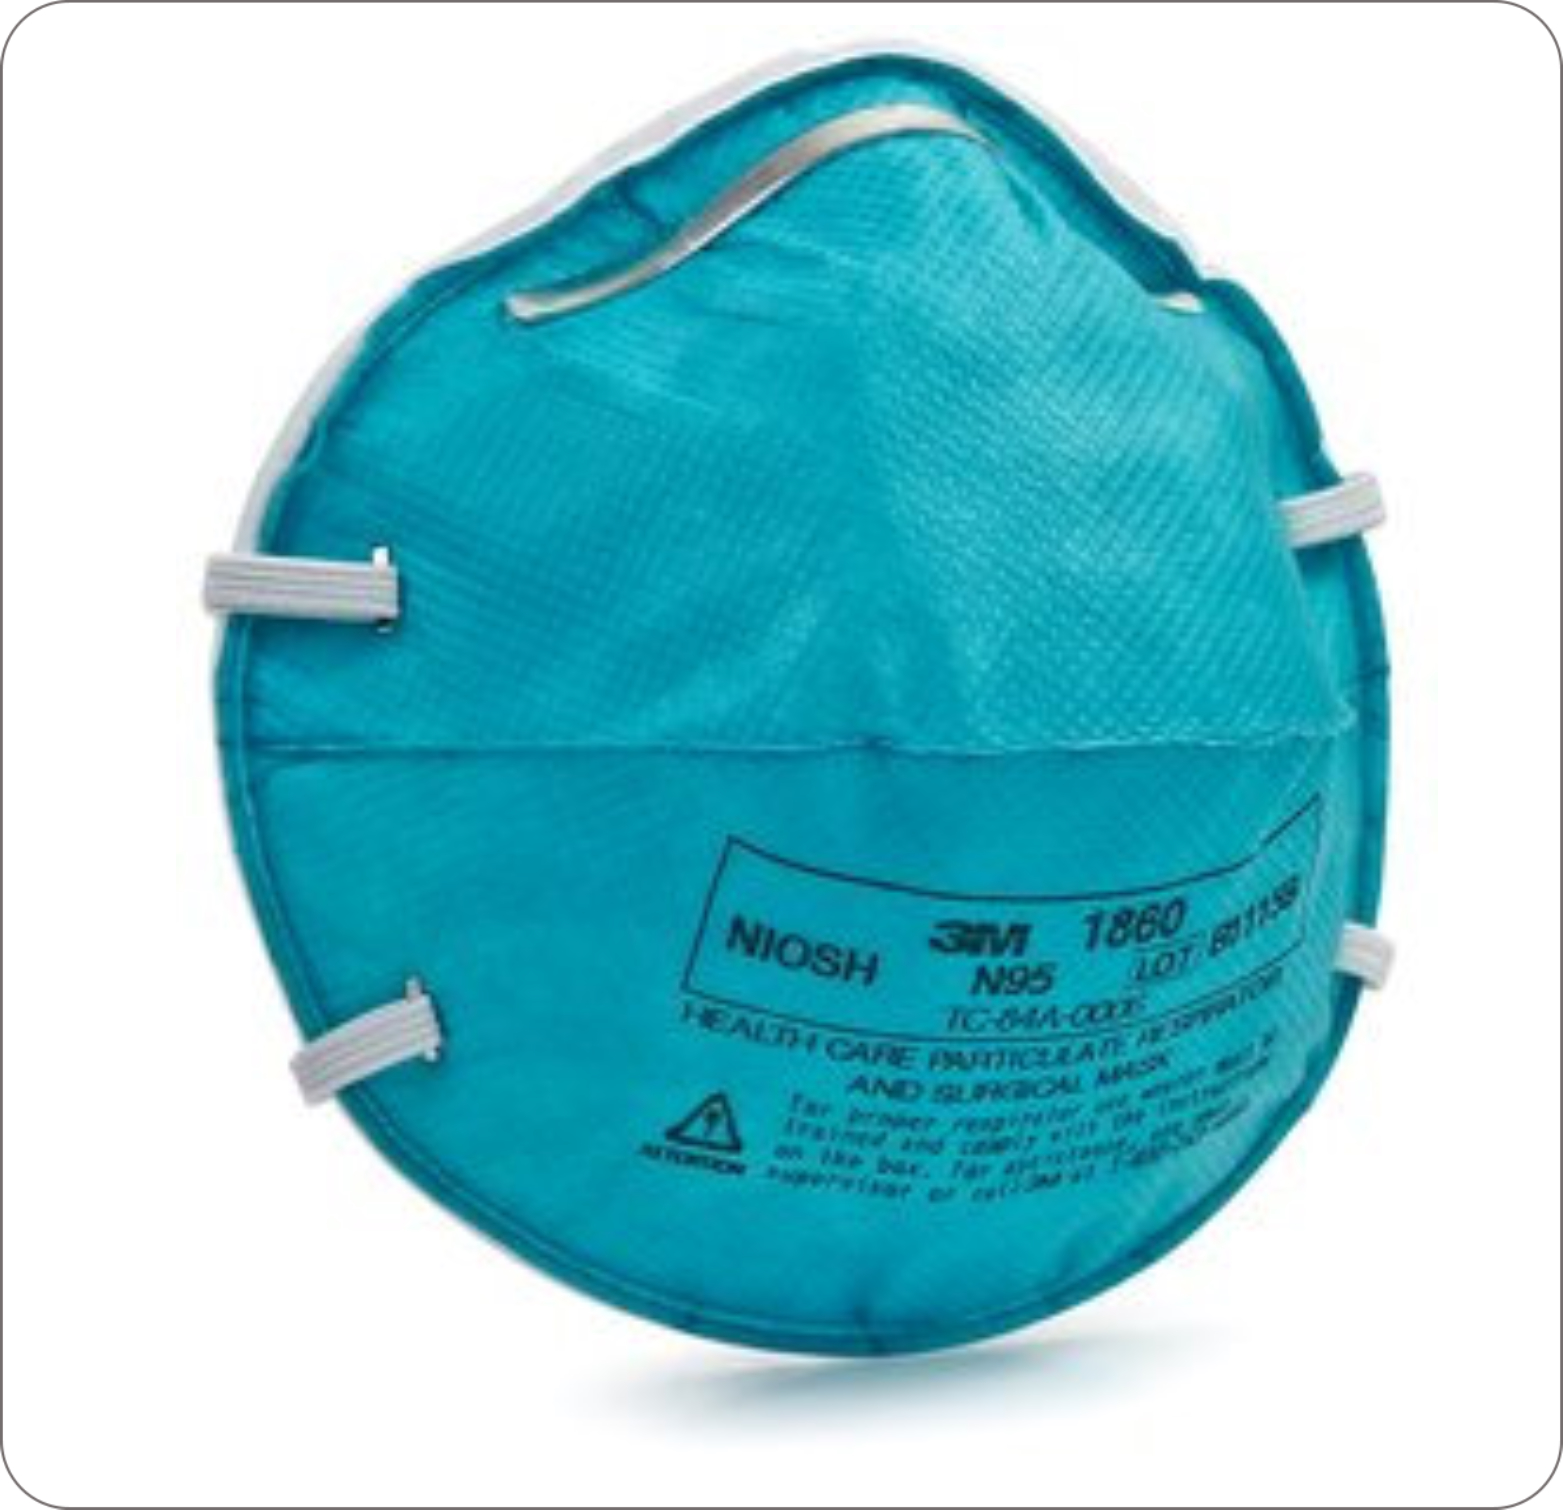 Mask Respirator N-95 Small Cone Molded Teal